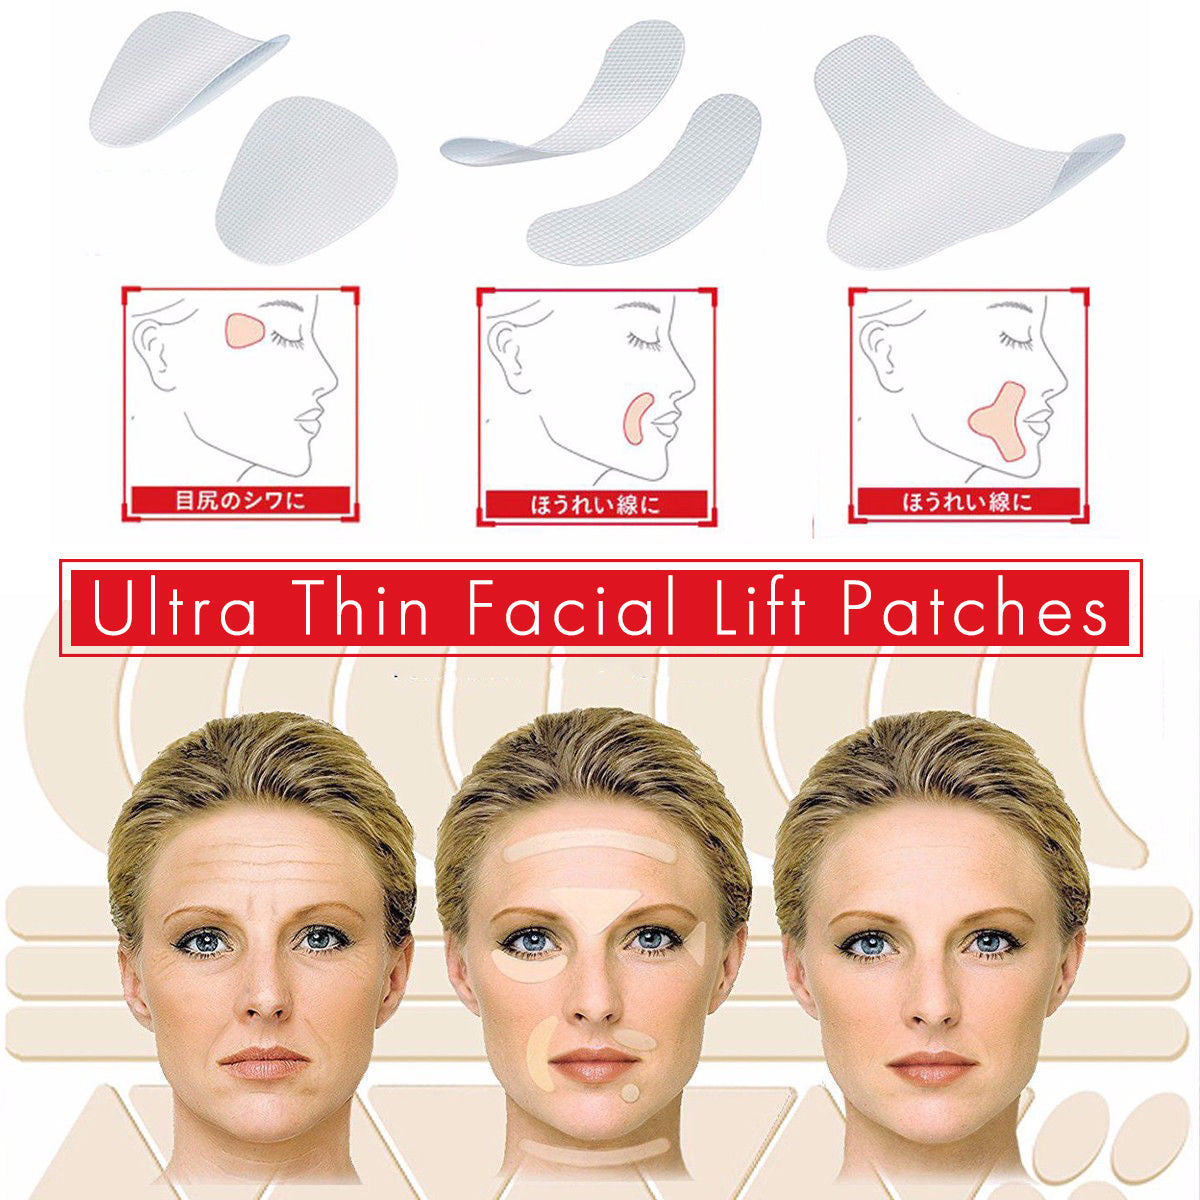 Ultra Thin Facial Lift Patches